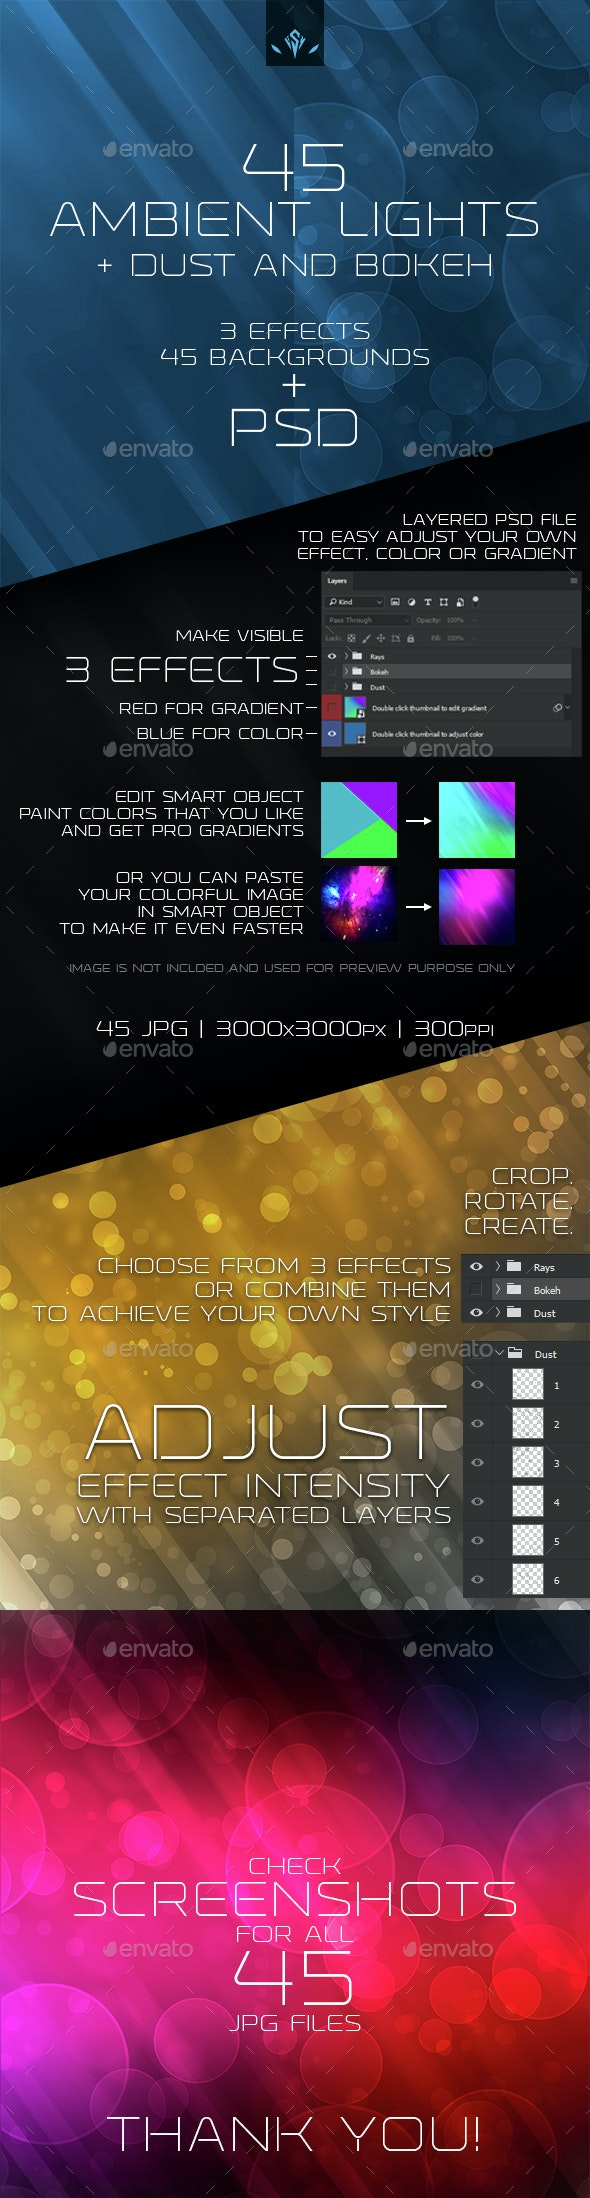 Ambient Lights Dust and Bokeh Background - Abstract Backgrounds